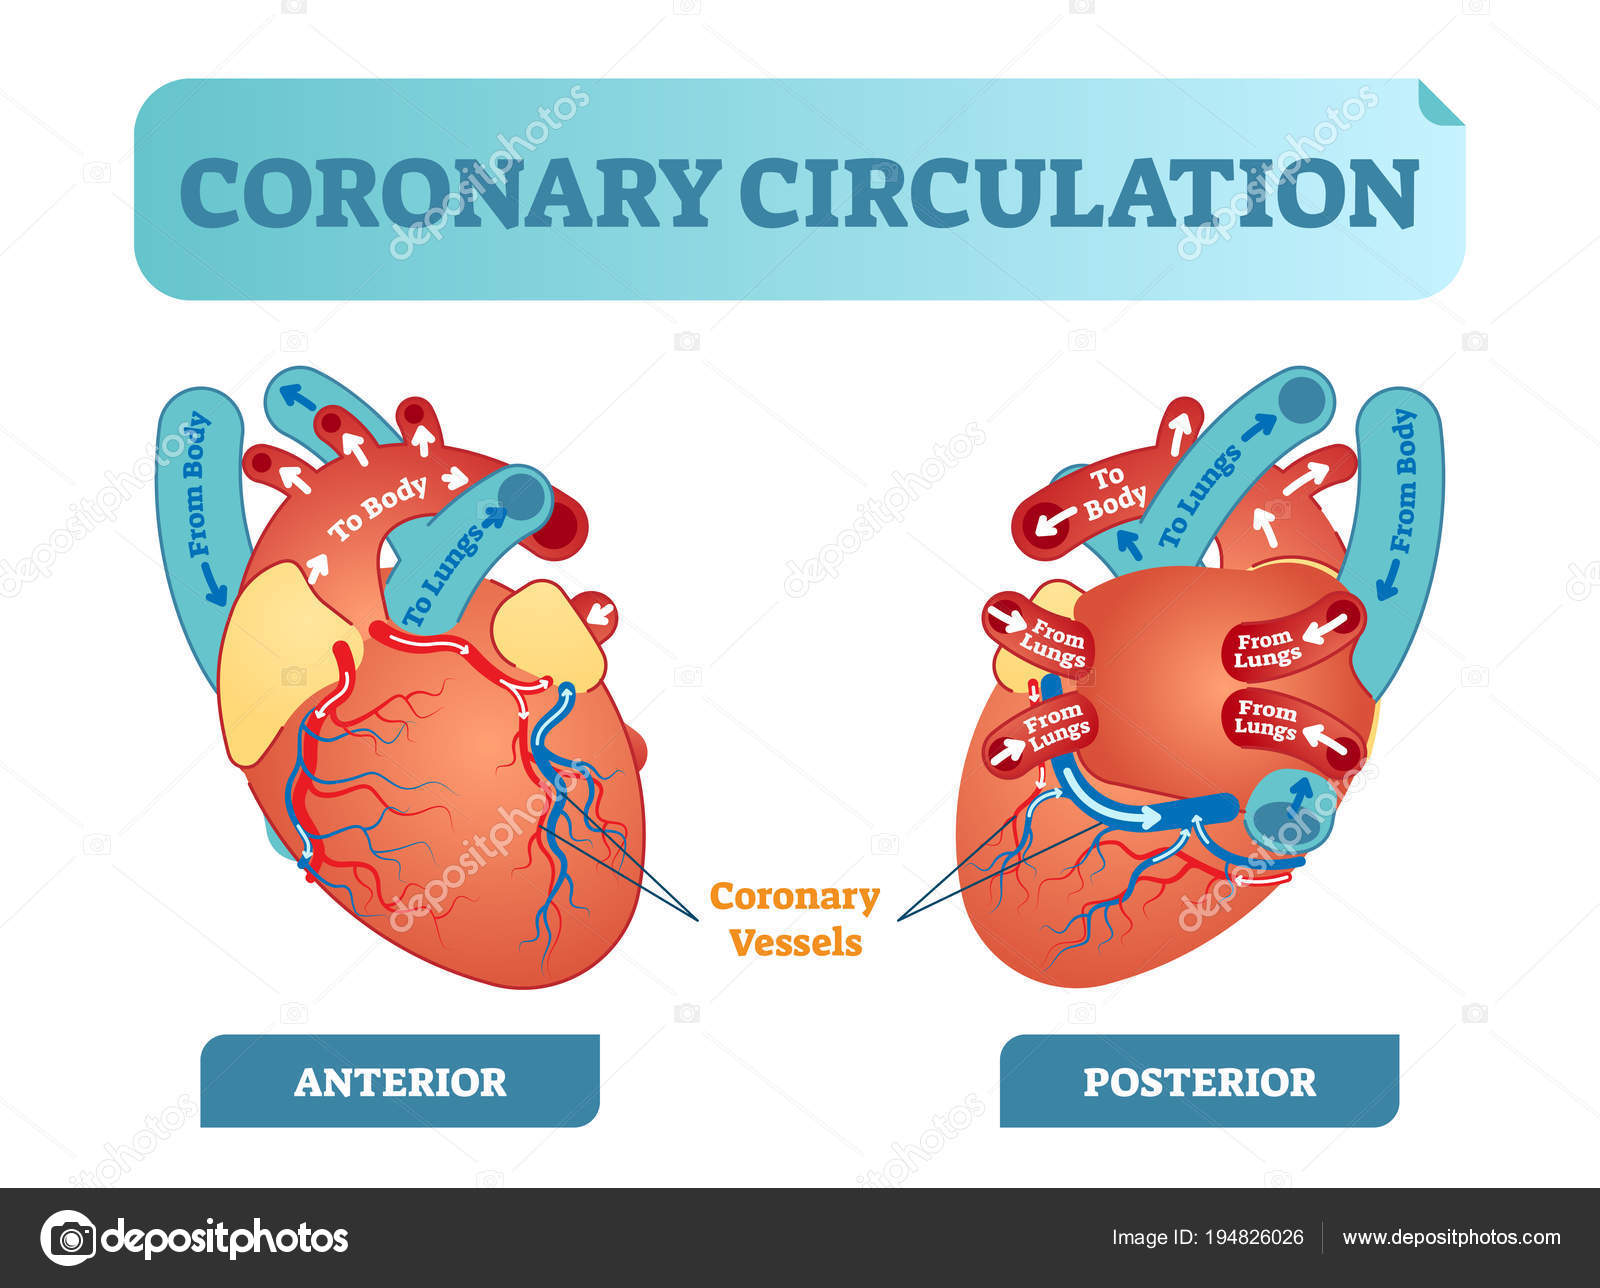 Coronary Circulation Anatomical Cross Section Diagram Labeled